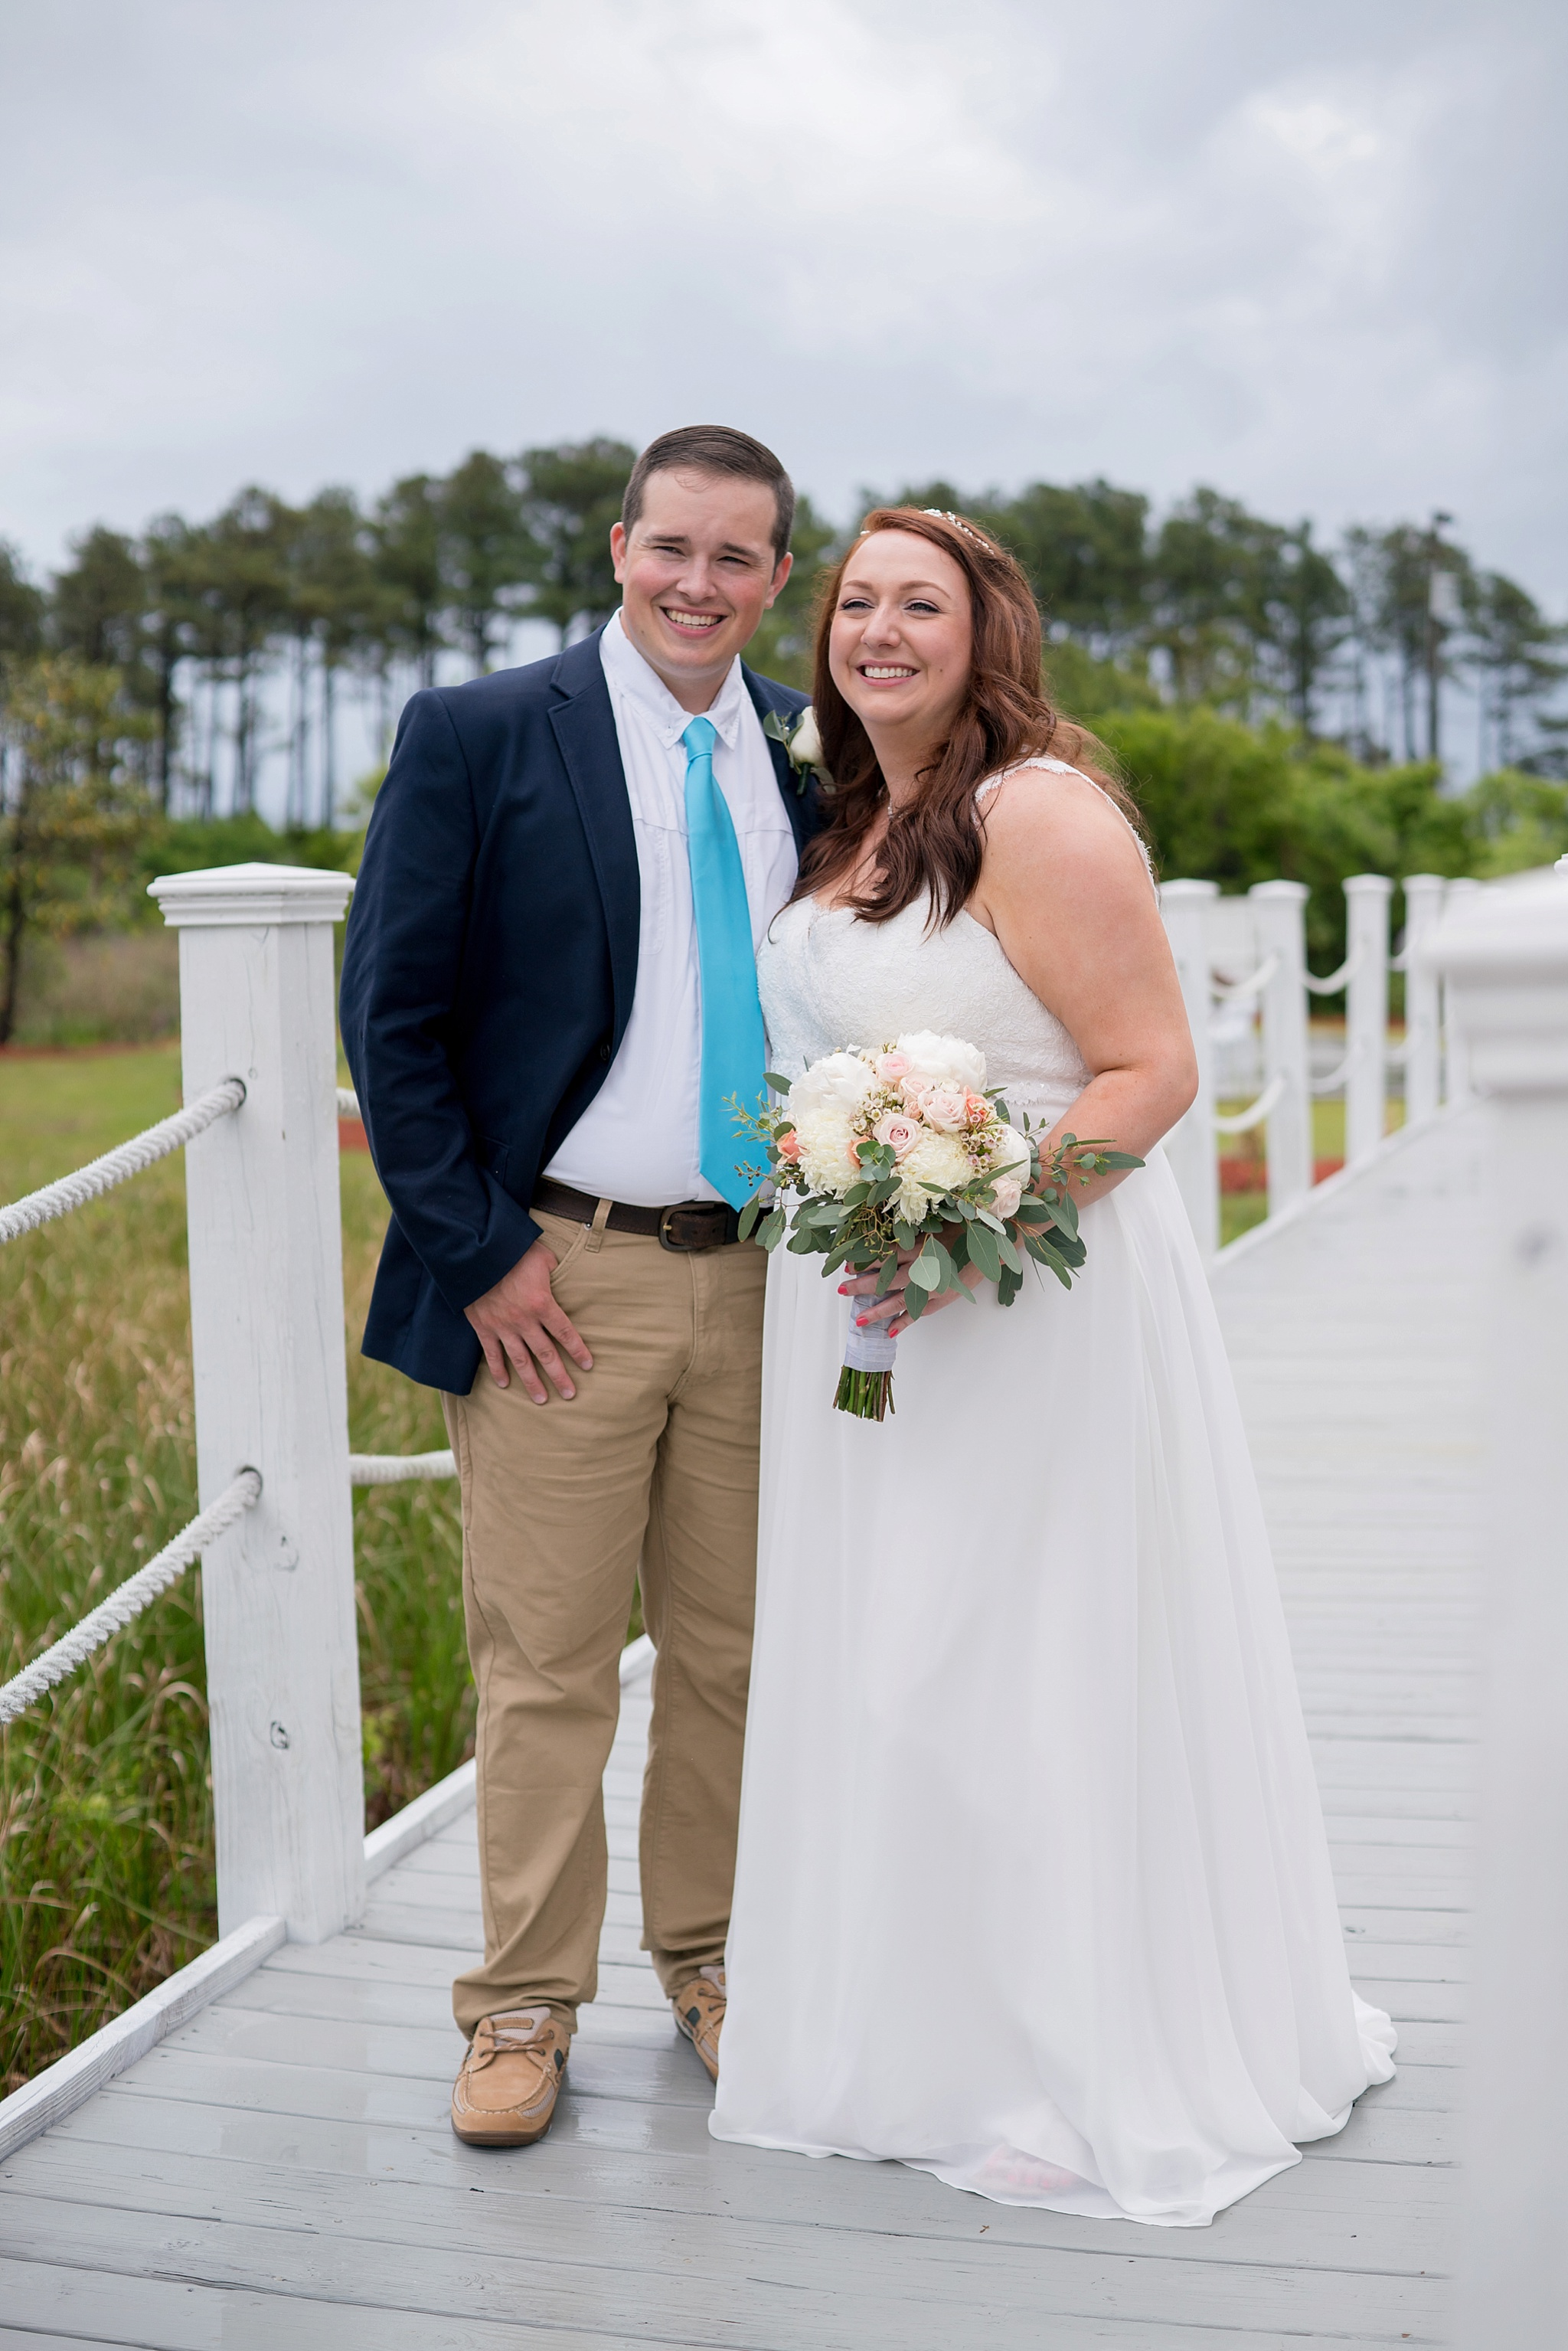 Manteo-NC-Wedding-Photographer-130.jpg